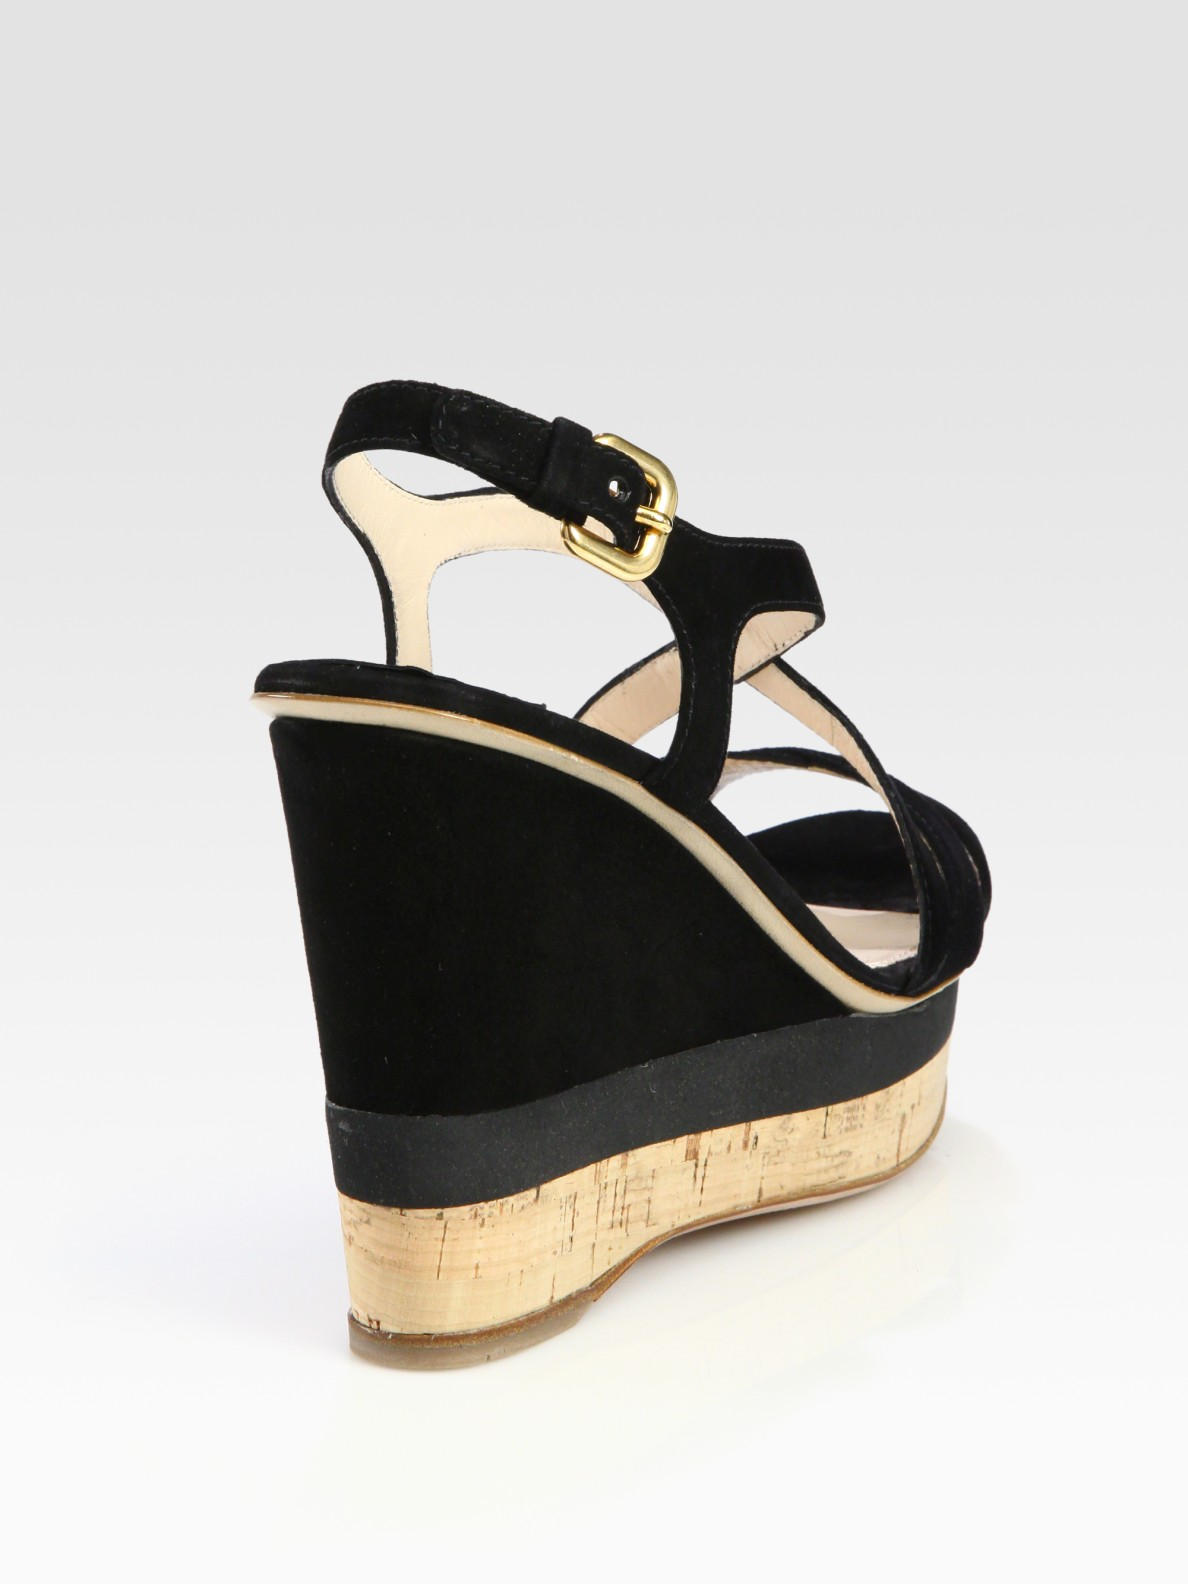 Prada Crossover Patent Leather Wedges cost for sale really sale online buy cheap factory outlet free shipping 100% authentic sale discount z49XZI3